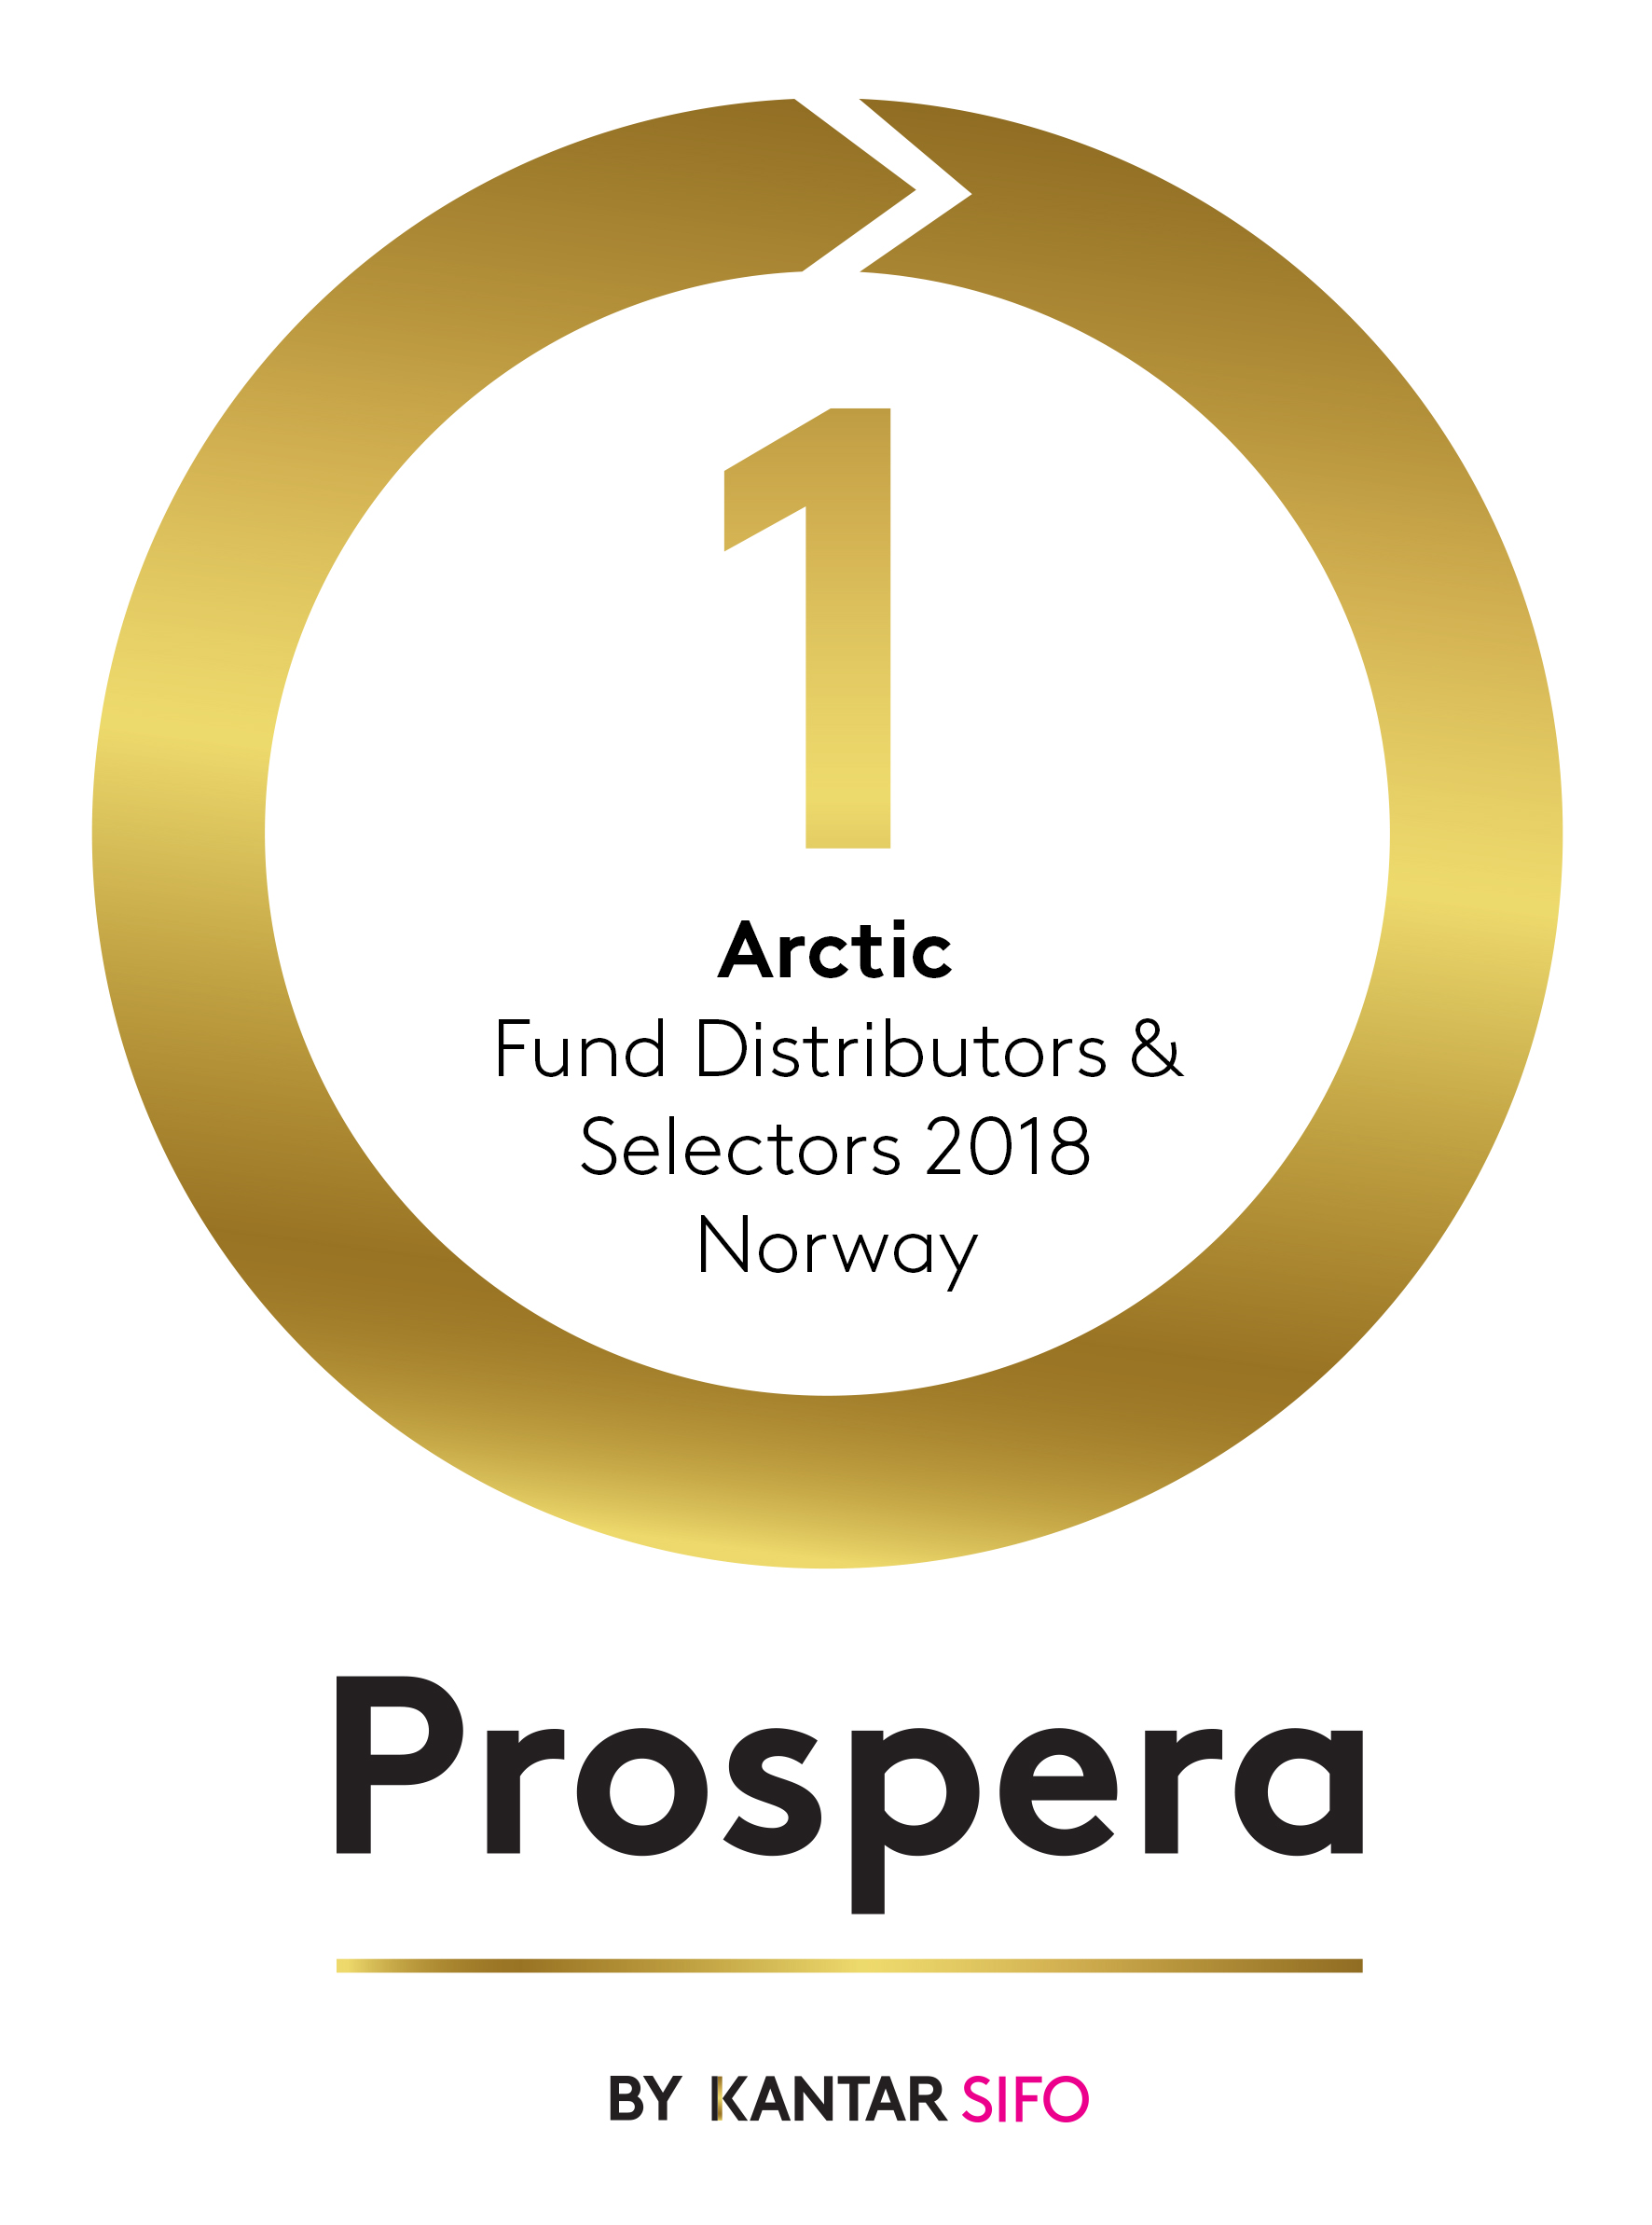 Voted #1 among Fund Distributors and Selectors in Norway